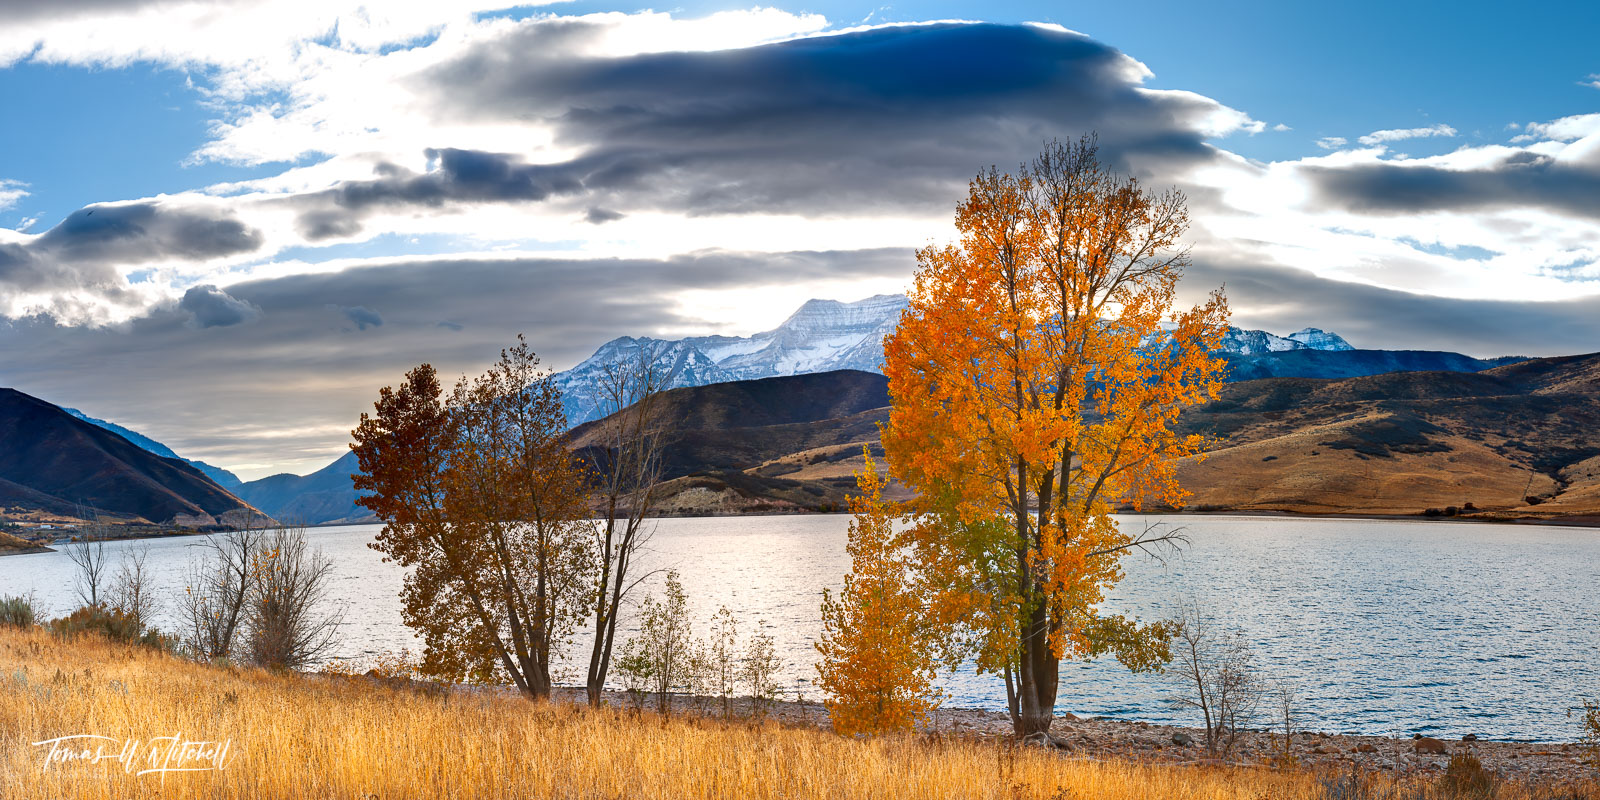 limited edition, fine art, prints, deer creek reservoir, utah, shoreline, panoramic, photograph, grass, rocks, water, hills, mountain, clouds, yellow, trees, fall, photo